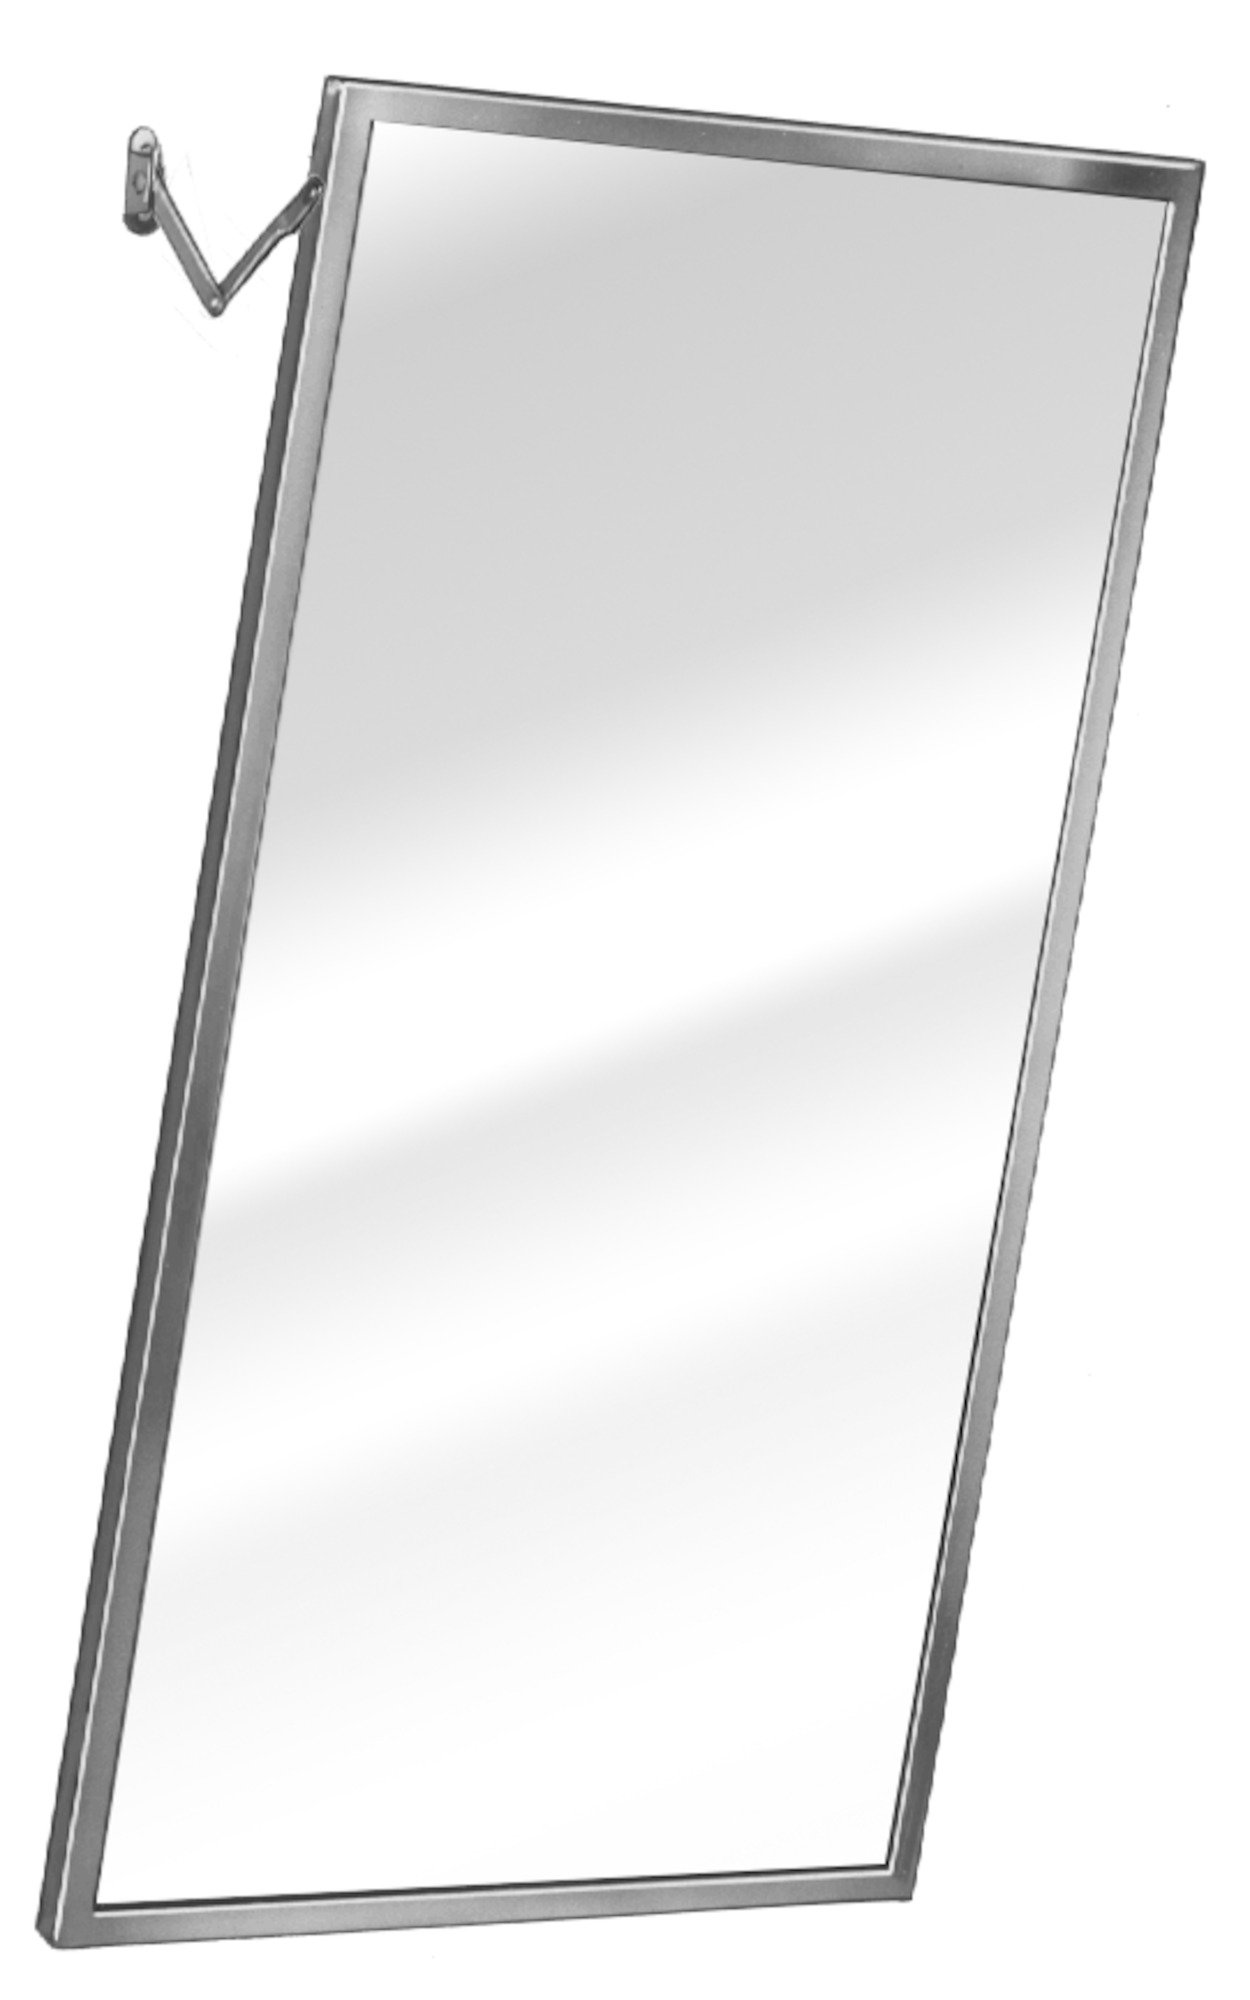 Adjustable Tilt Mirror 782 | Accurate Door & Hardware, Inc.